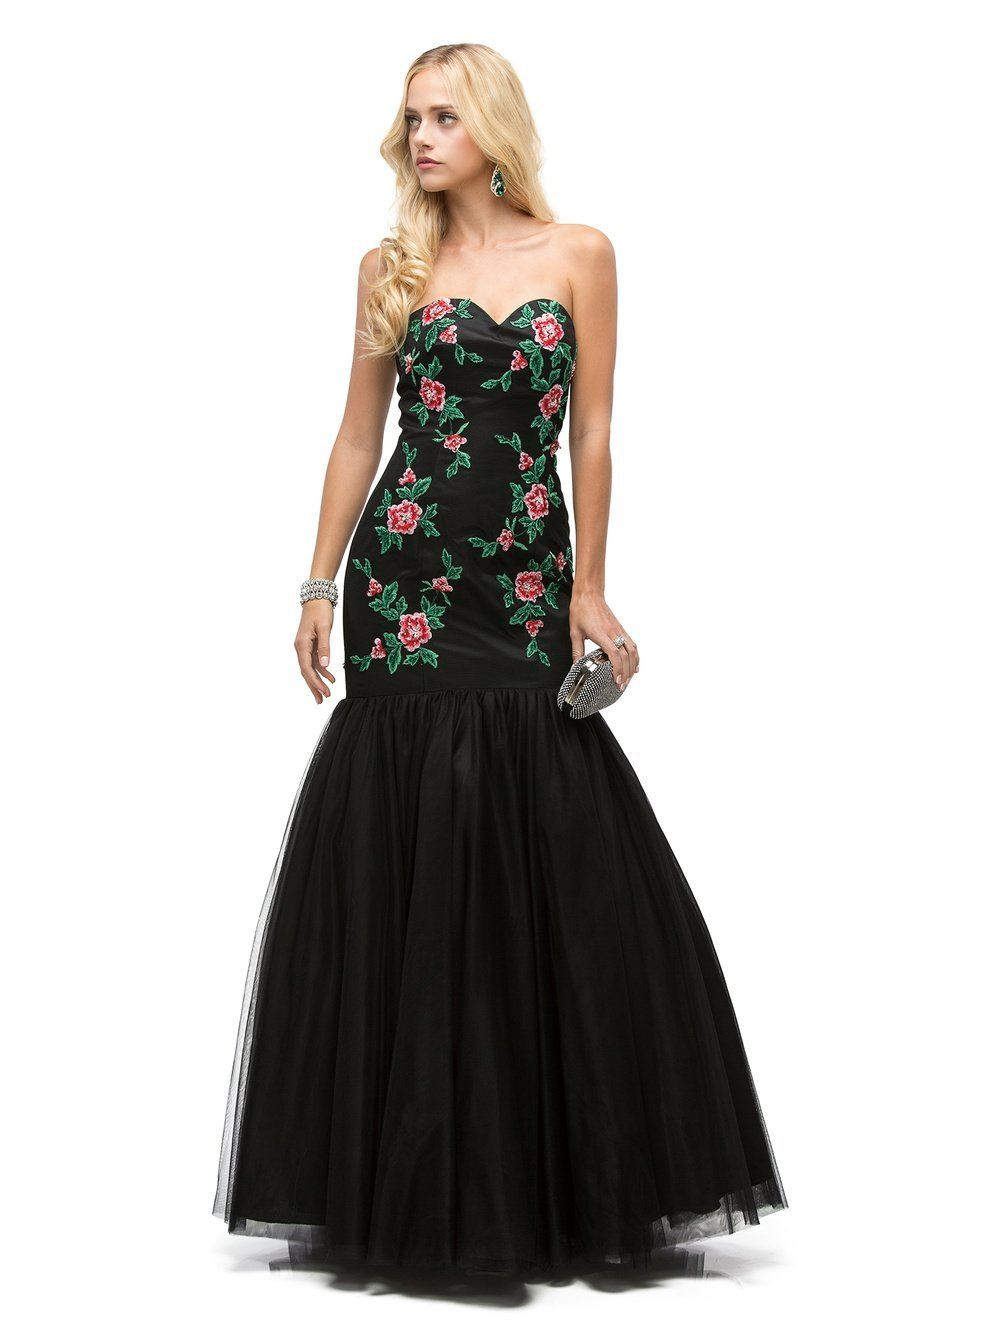 Black Mermaid Prom Dress with Floral Embroidery – Simply Fab Dress